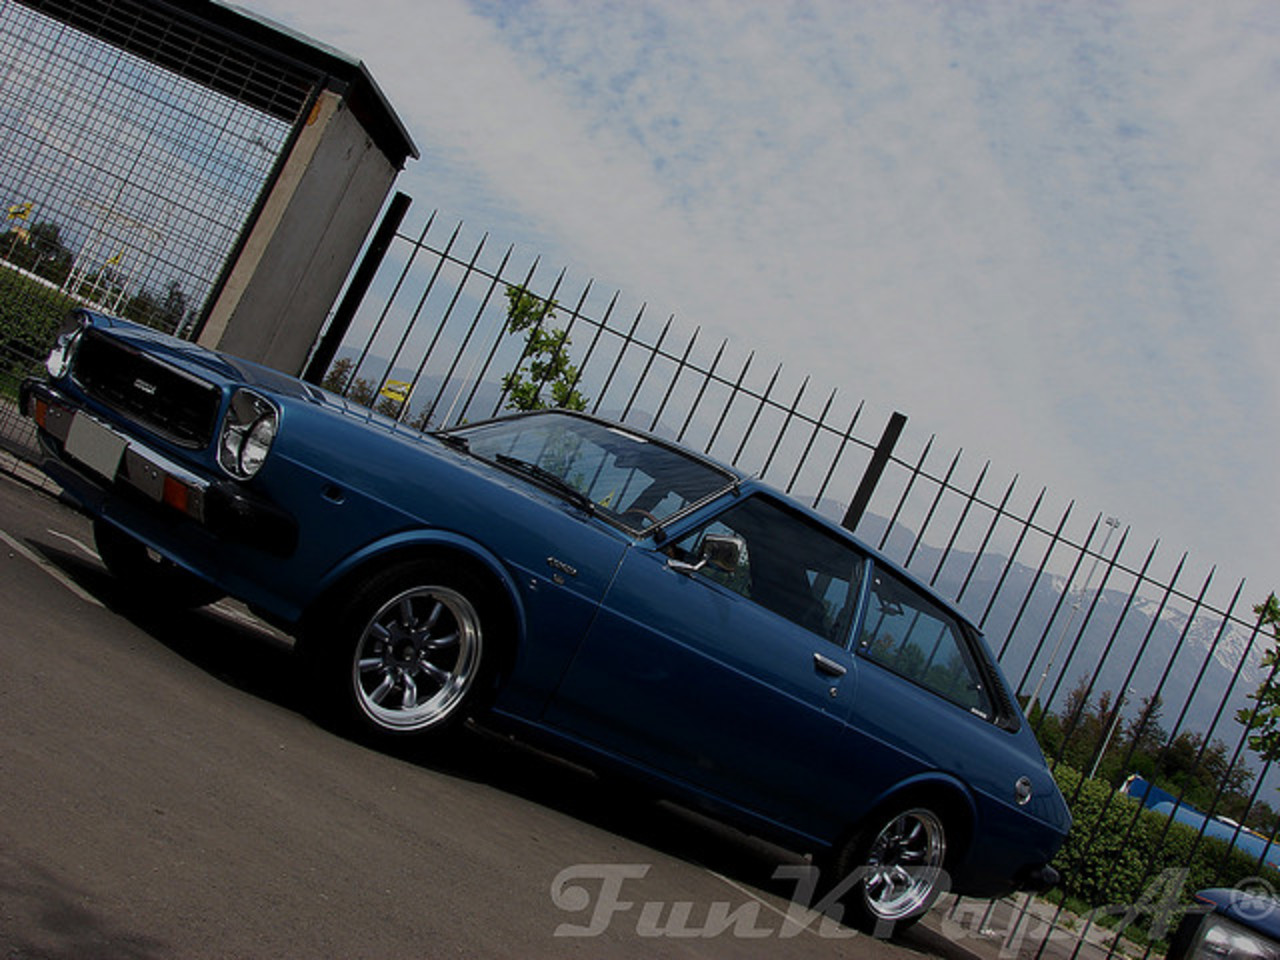 Toyota Corolla LiftBack [KE70] | Flickr - Photo Sharing!